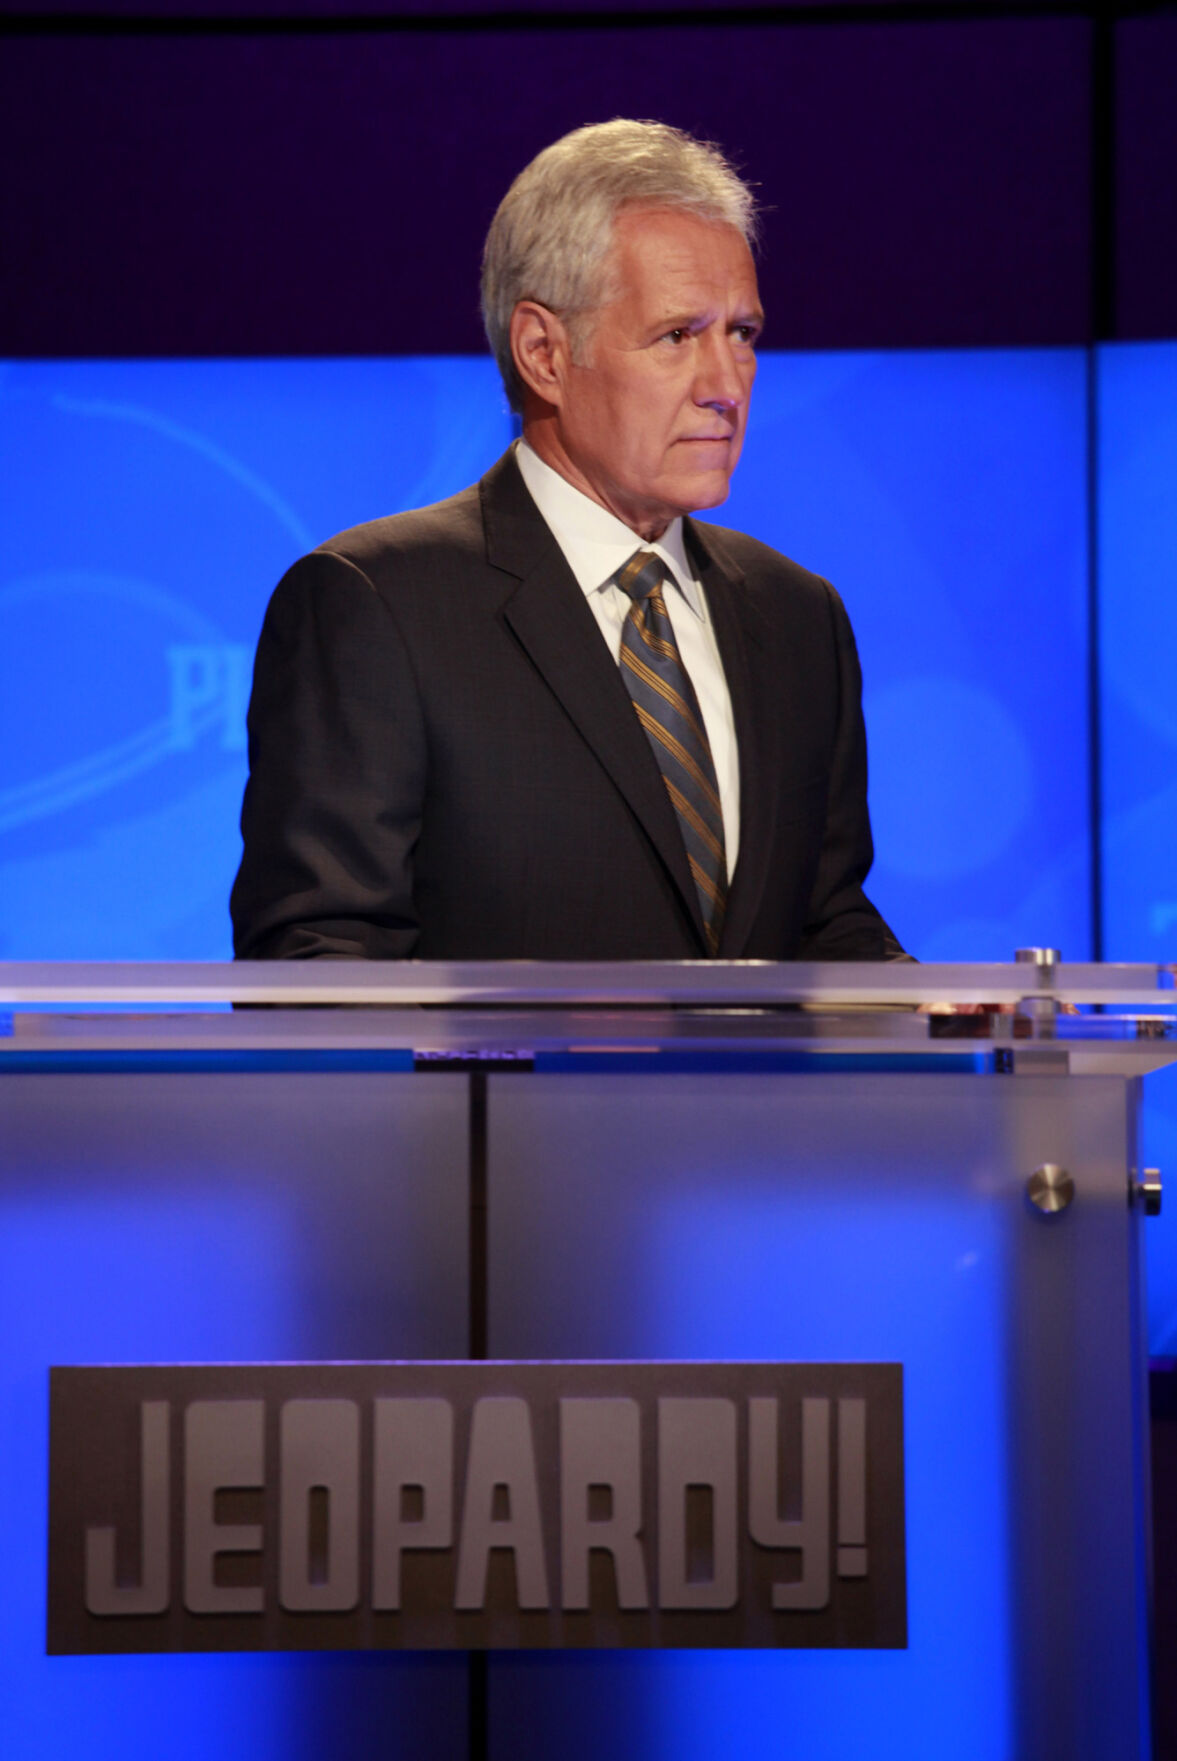 Trebek's last 'Jeopardy' episode will air on Christmas